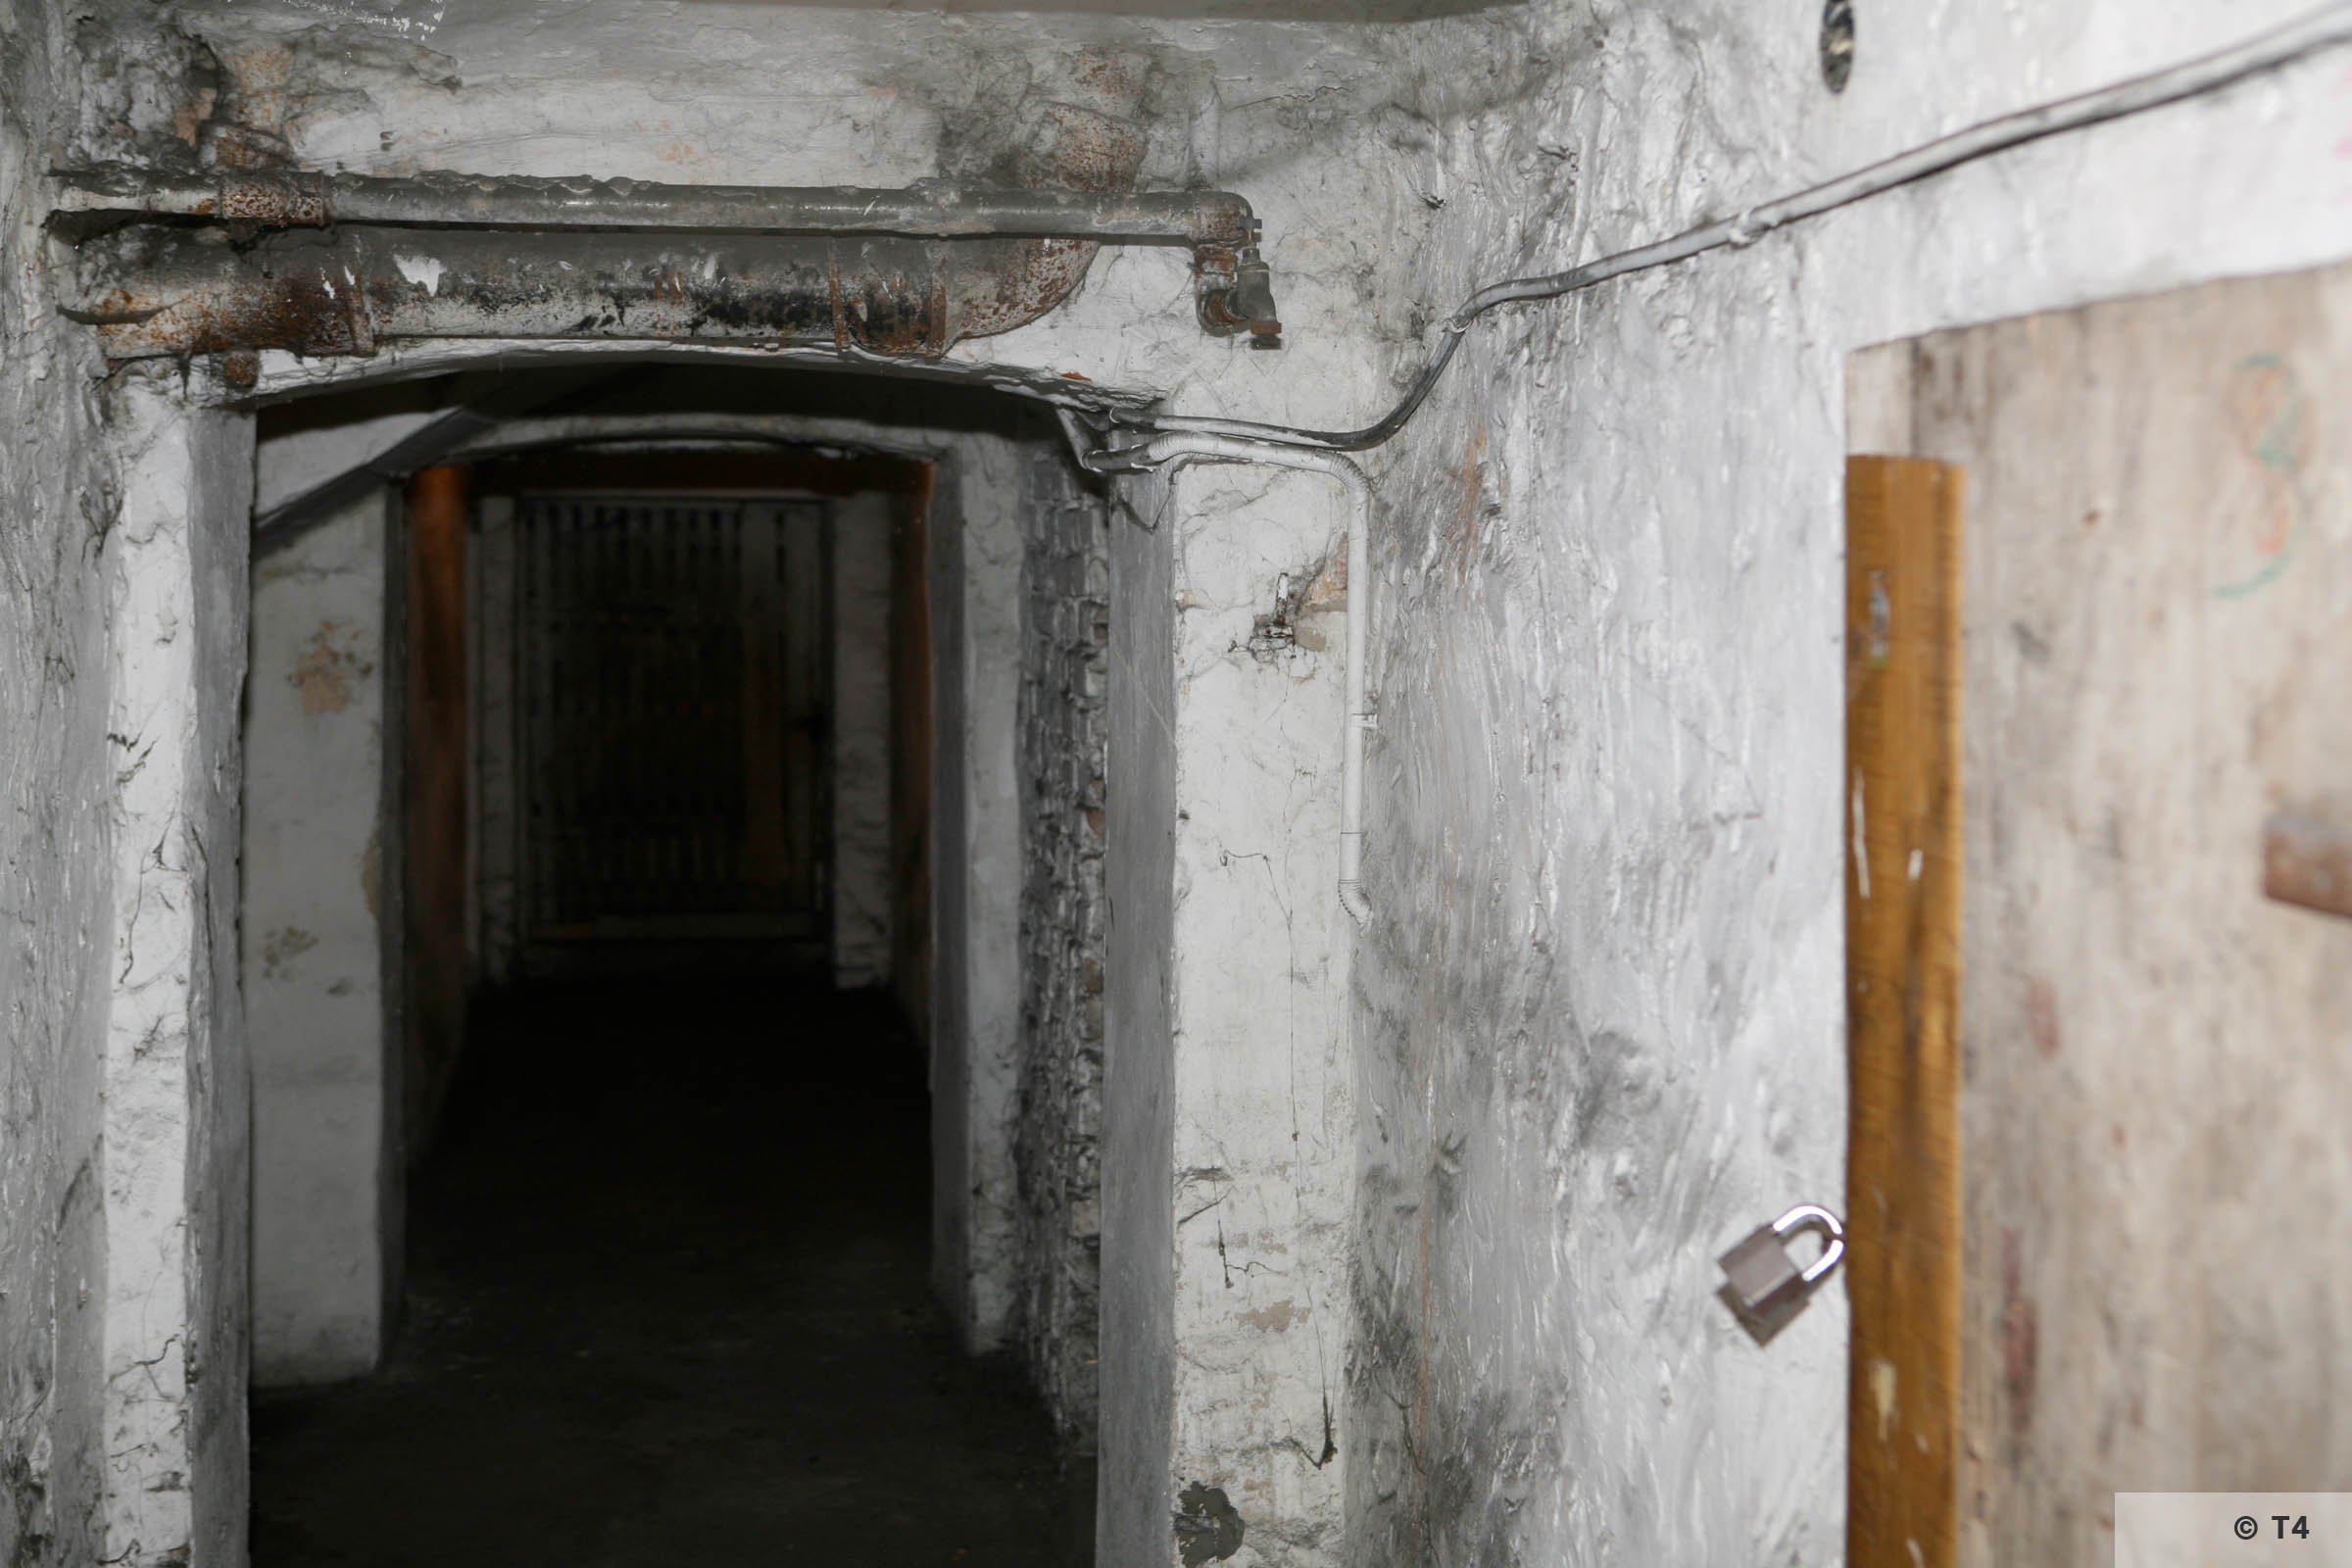 Former cells in the basement of the amdinistration building and prisoner accomodation. 2008 T4 4551